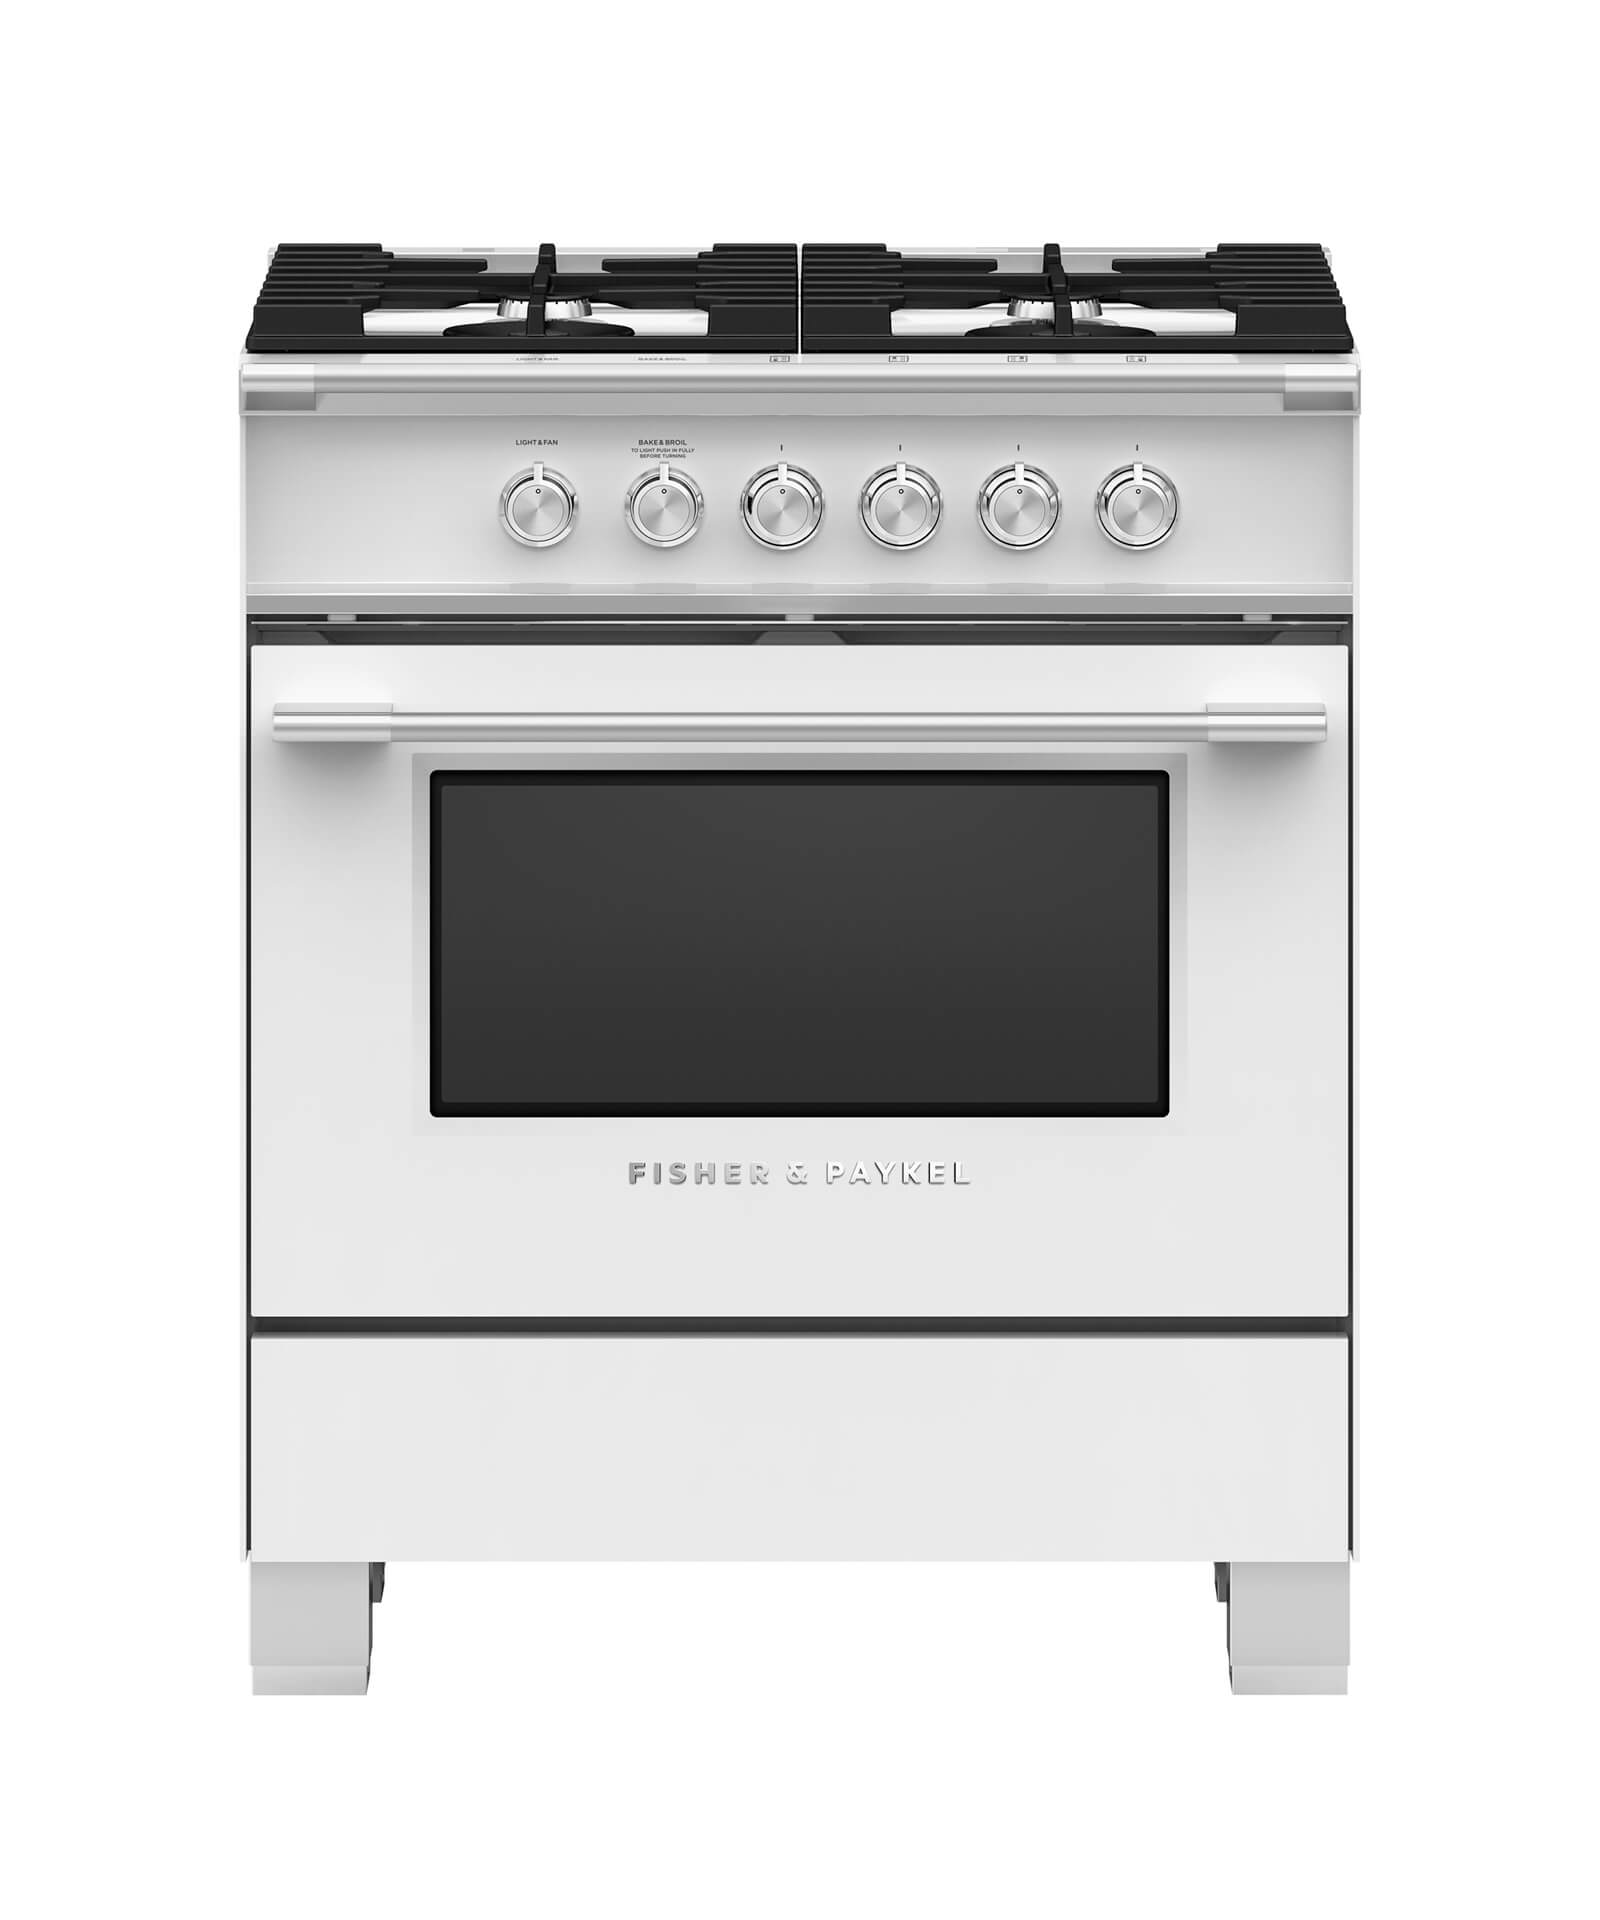 Model: OR30SCG4W1 | Gas Range, 30""